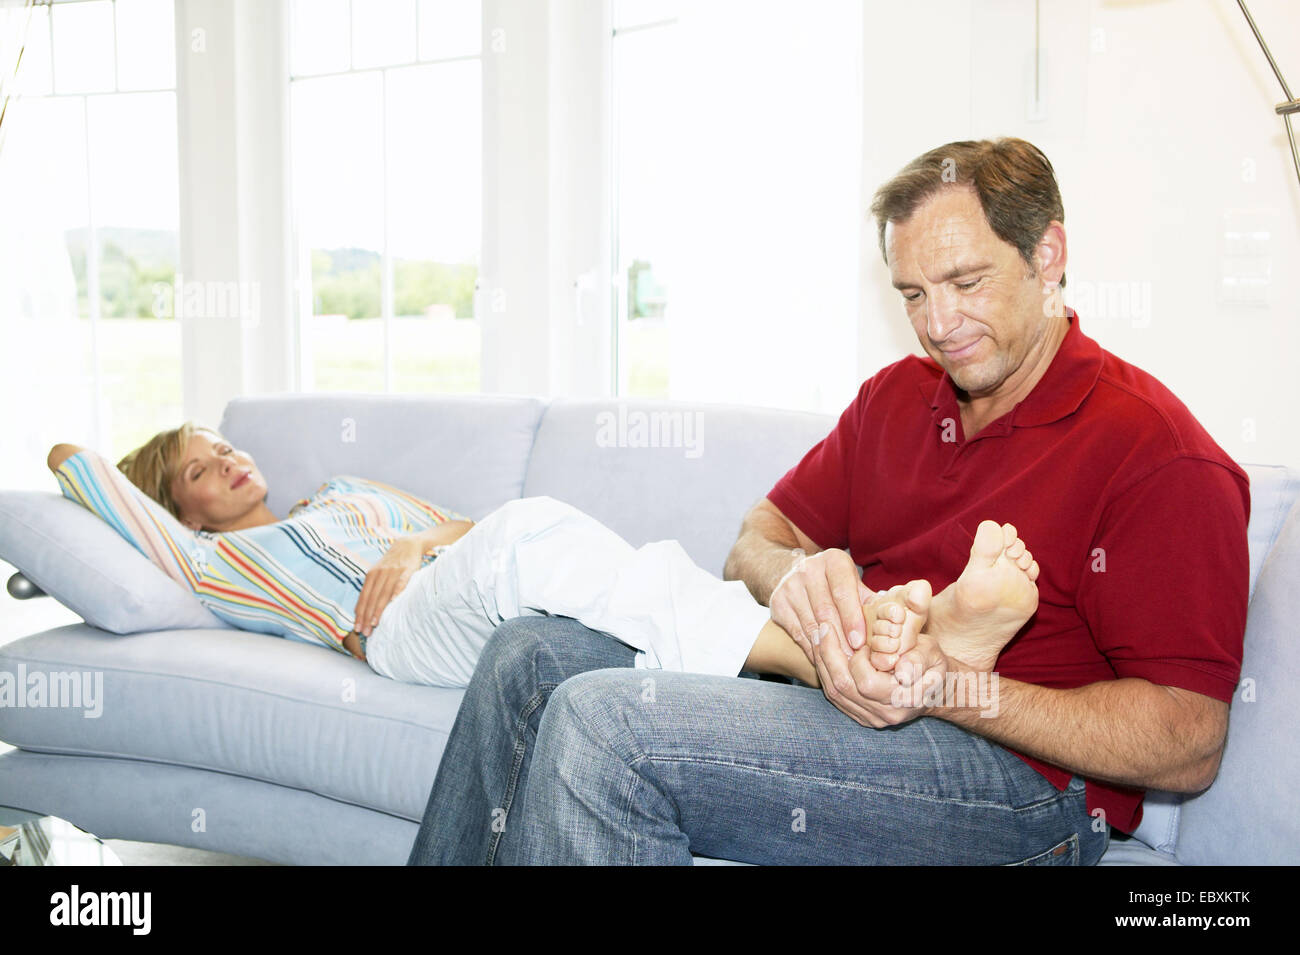 How To Massage Wife